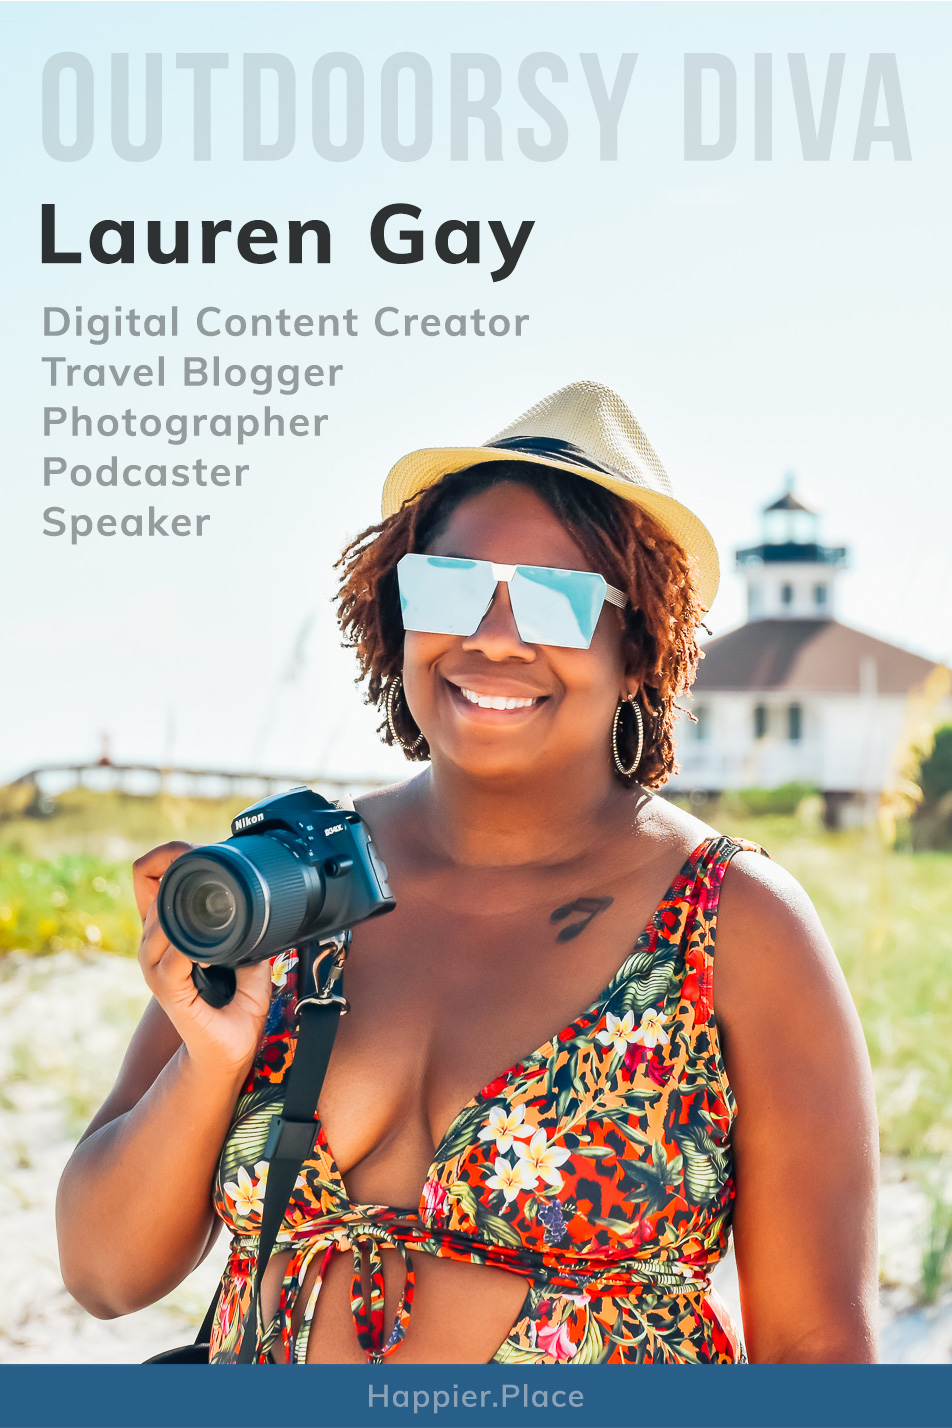 Lauren Gay, Outdoorsy Diva, Travel Blogger, Digital Content Creator, Photographer, Podcaster, and Speaker, in Florida, Happier Place